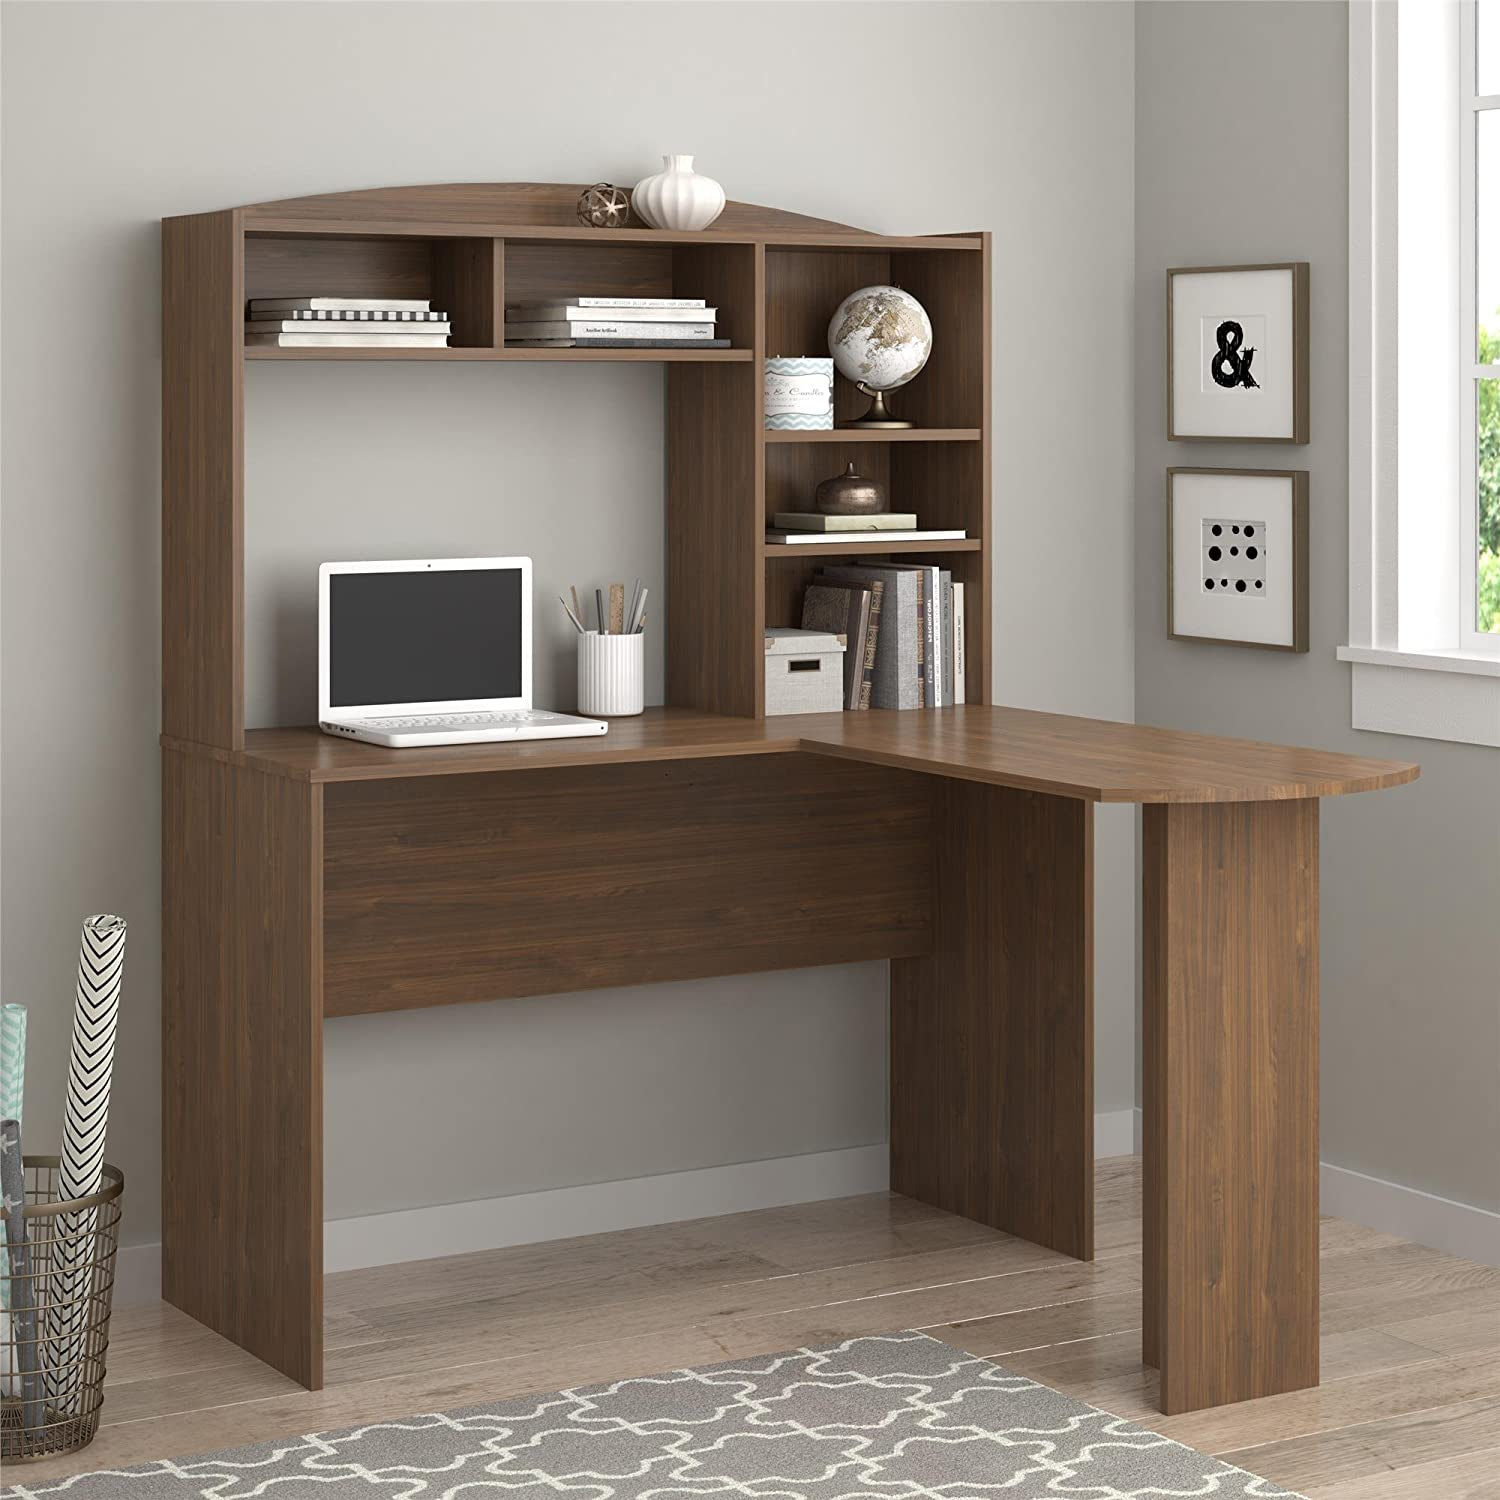 desk profile dp amazon oak bookcase kitchen office wood furniture workstation classic piece uk co computer home grain hutch